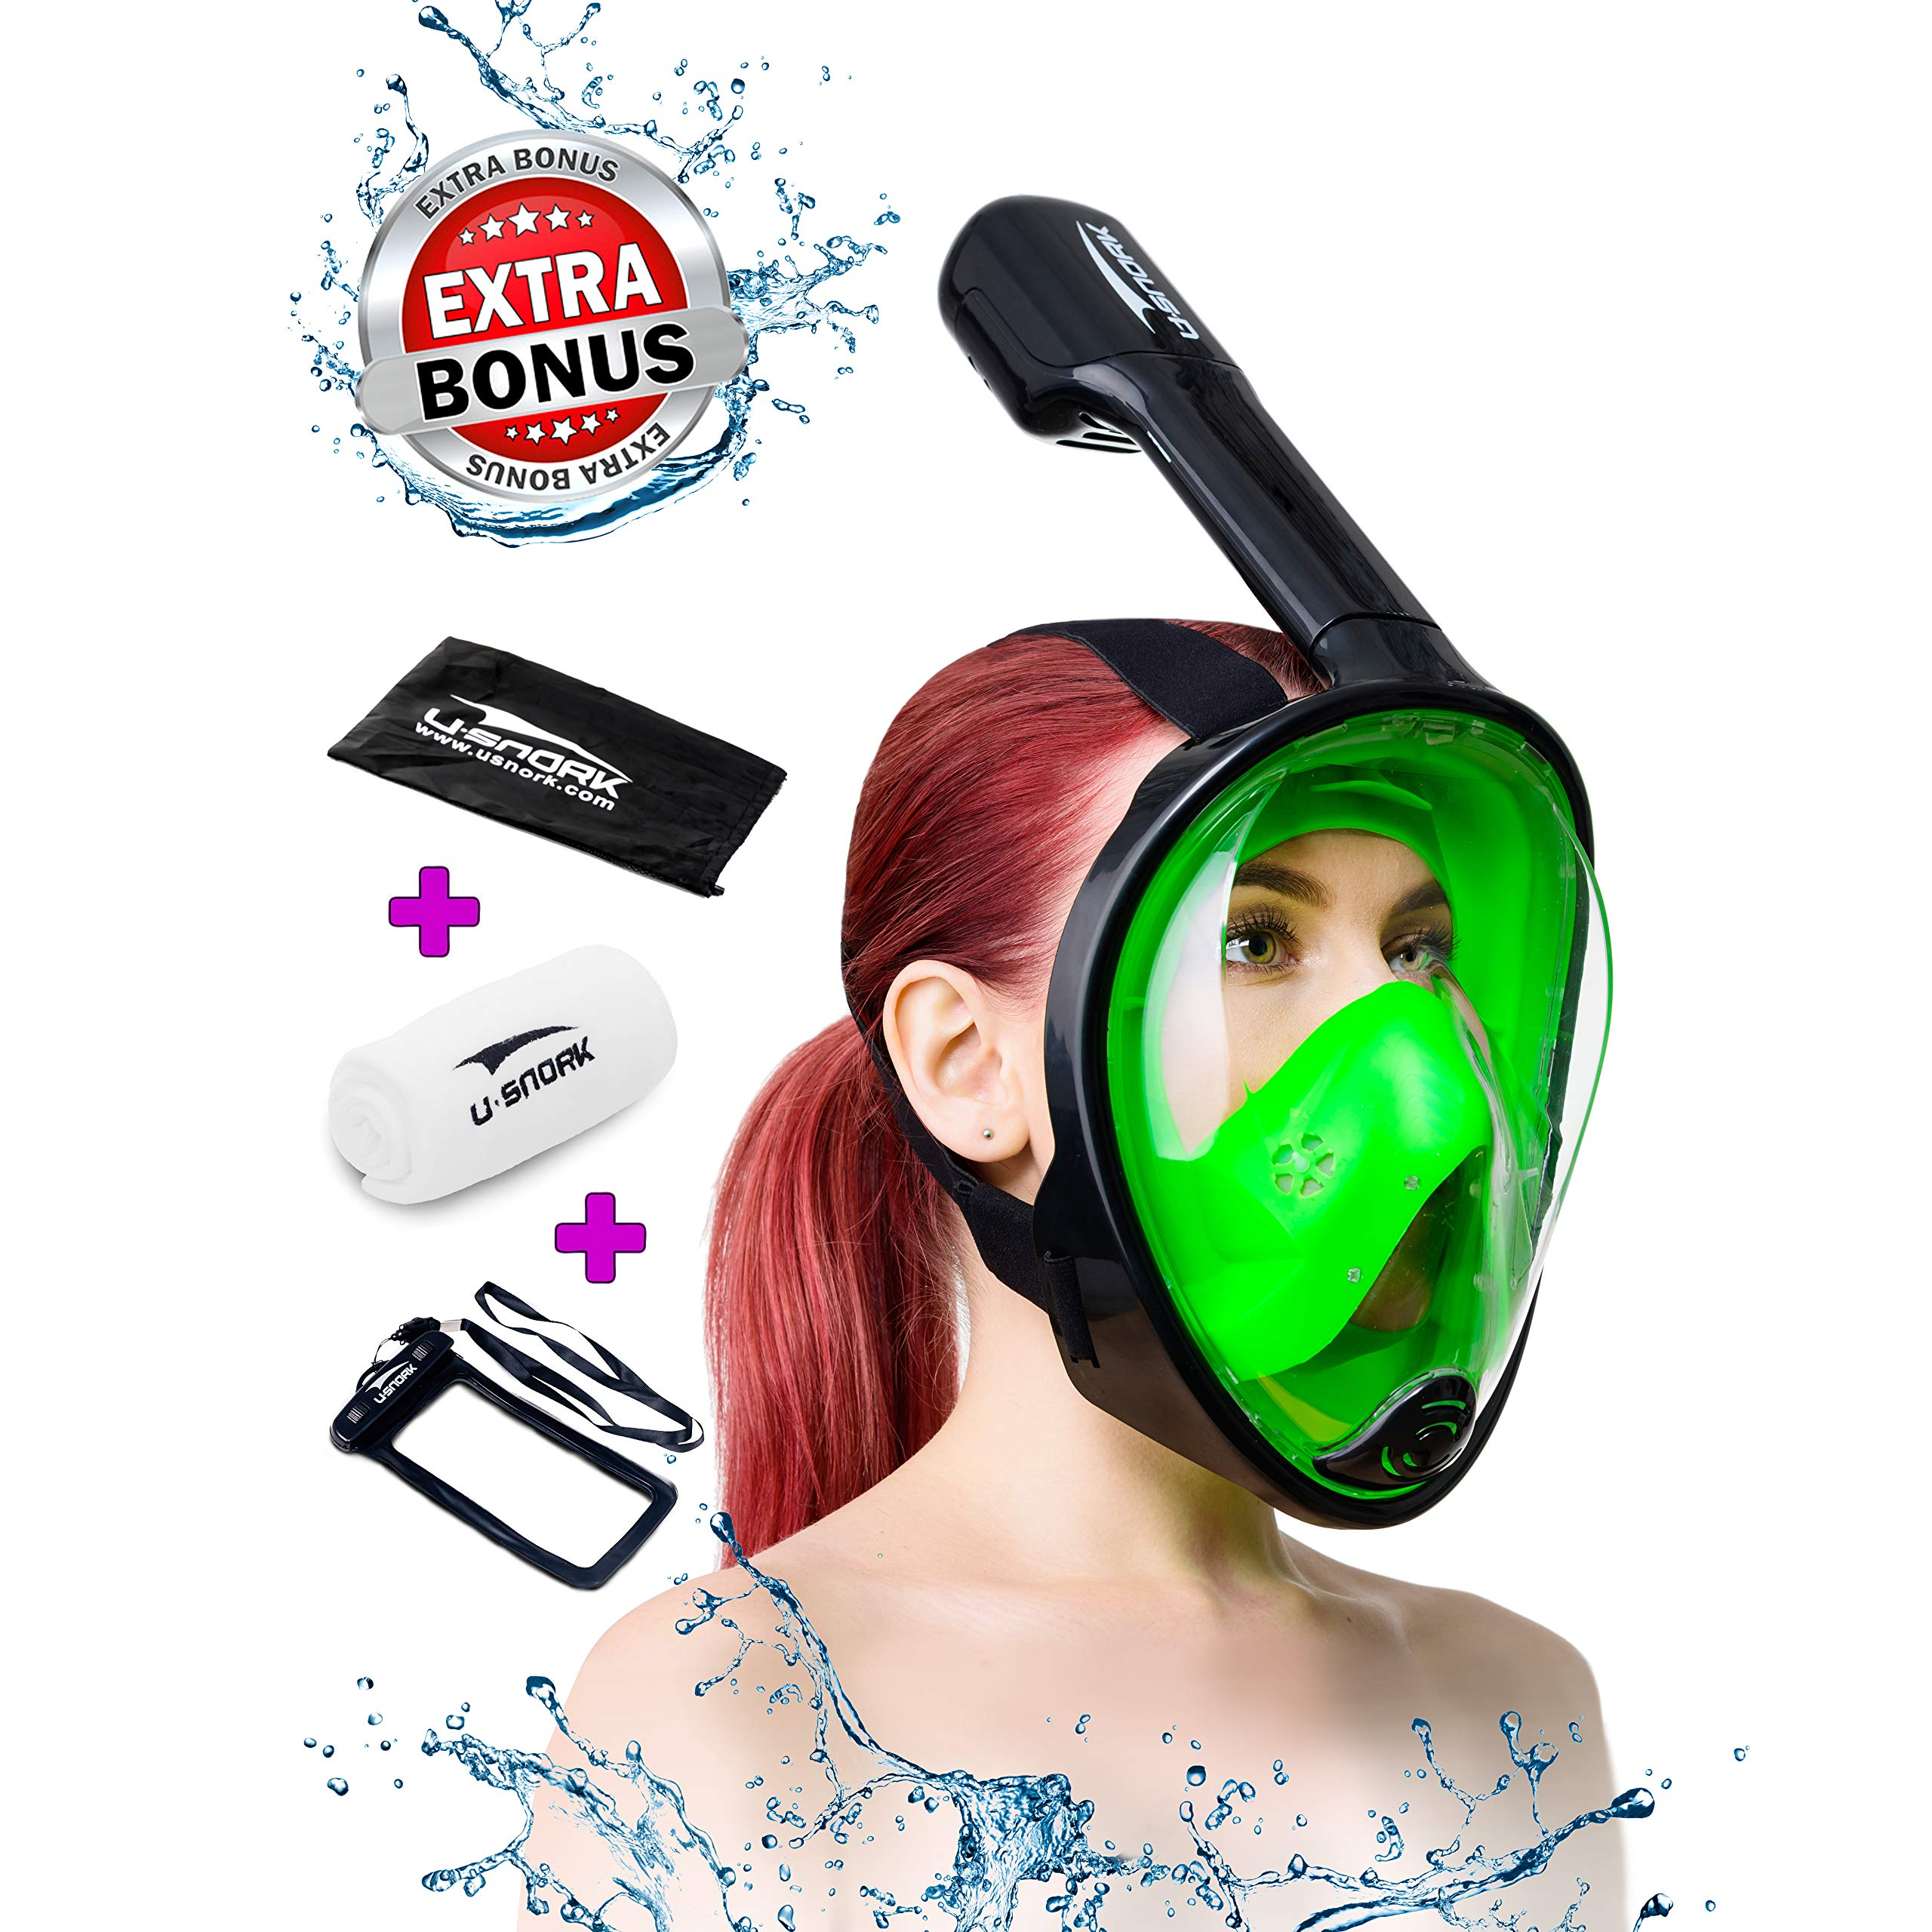 Usnork [2018 Upgrade Full Face Snorkel Mask for Kids and Adults, Easybreath Snorkeling Gear, Anti-Fog, Anti-Leak Snorkel Set, Scuba Mask with 180 View, 4 Gifts (Black - Green, L/XL)